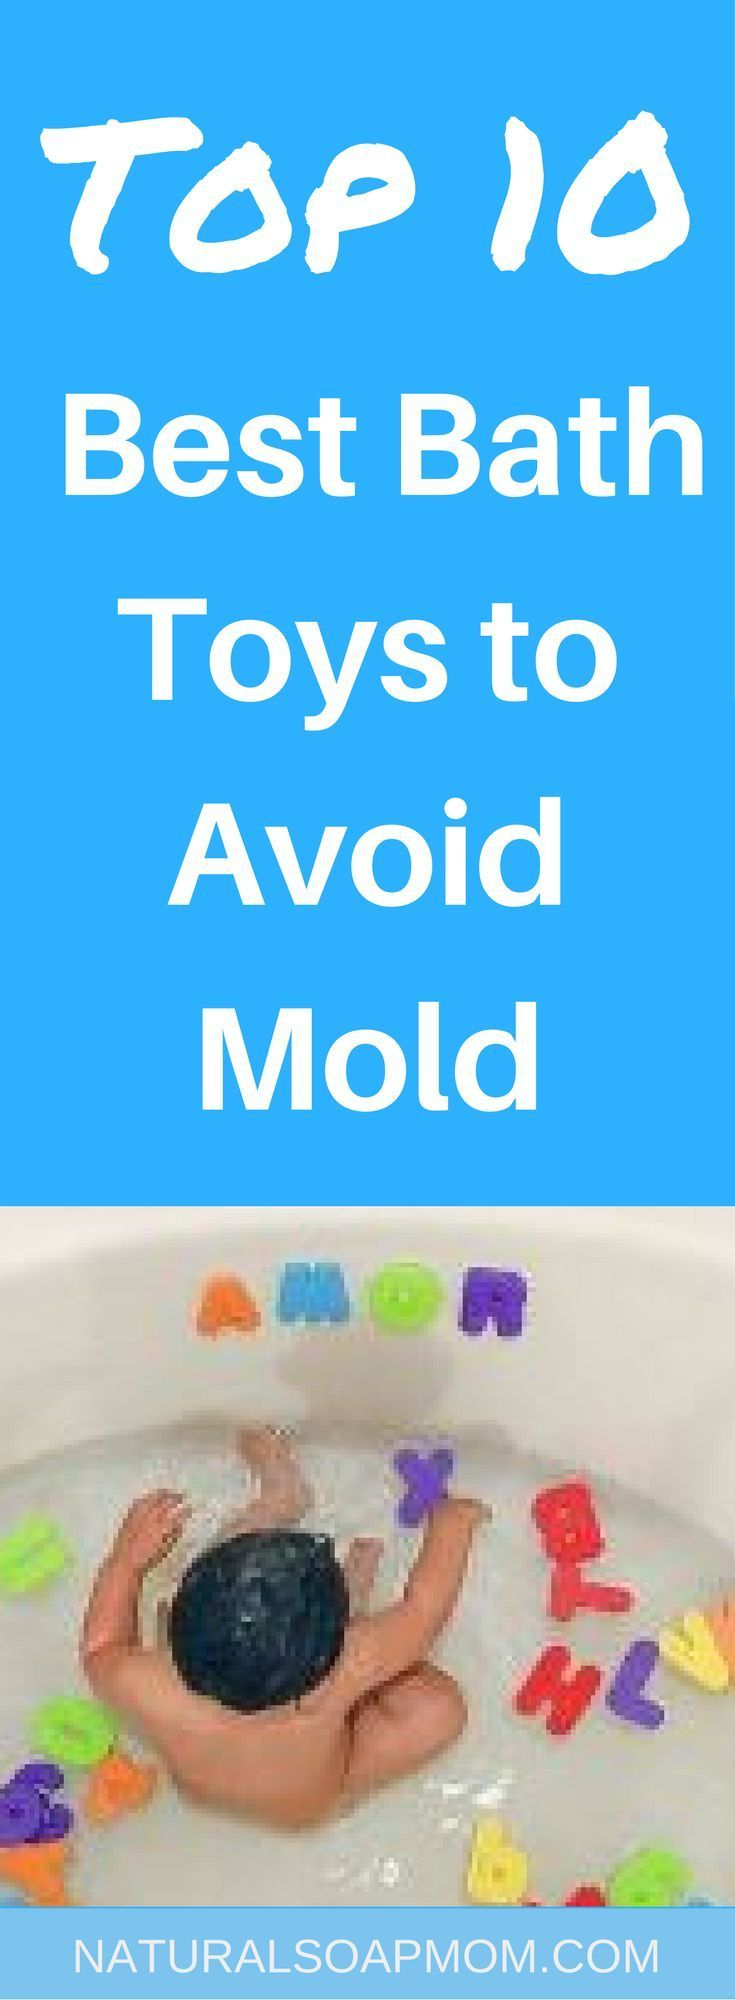 10 Best Bath Toys to Avoid Sneaky Mold Growth In Your Tub | Bath ...